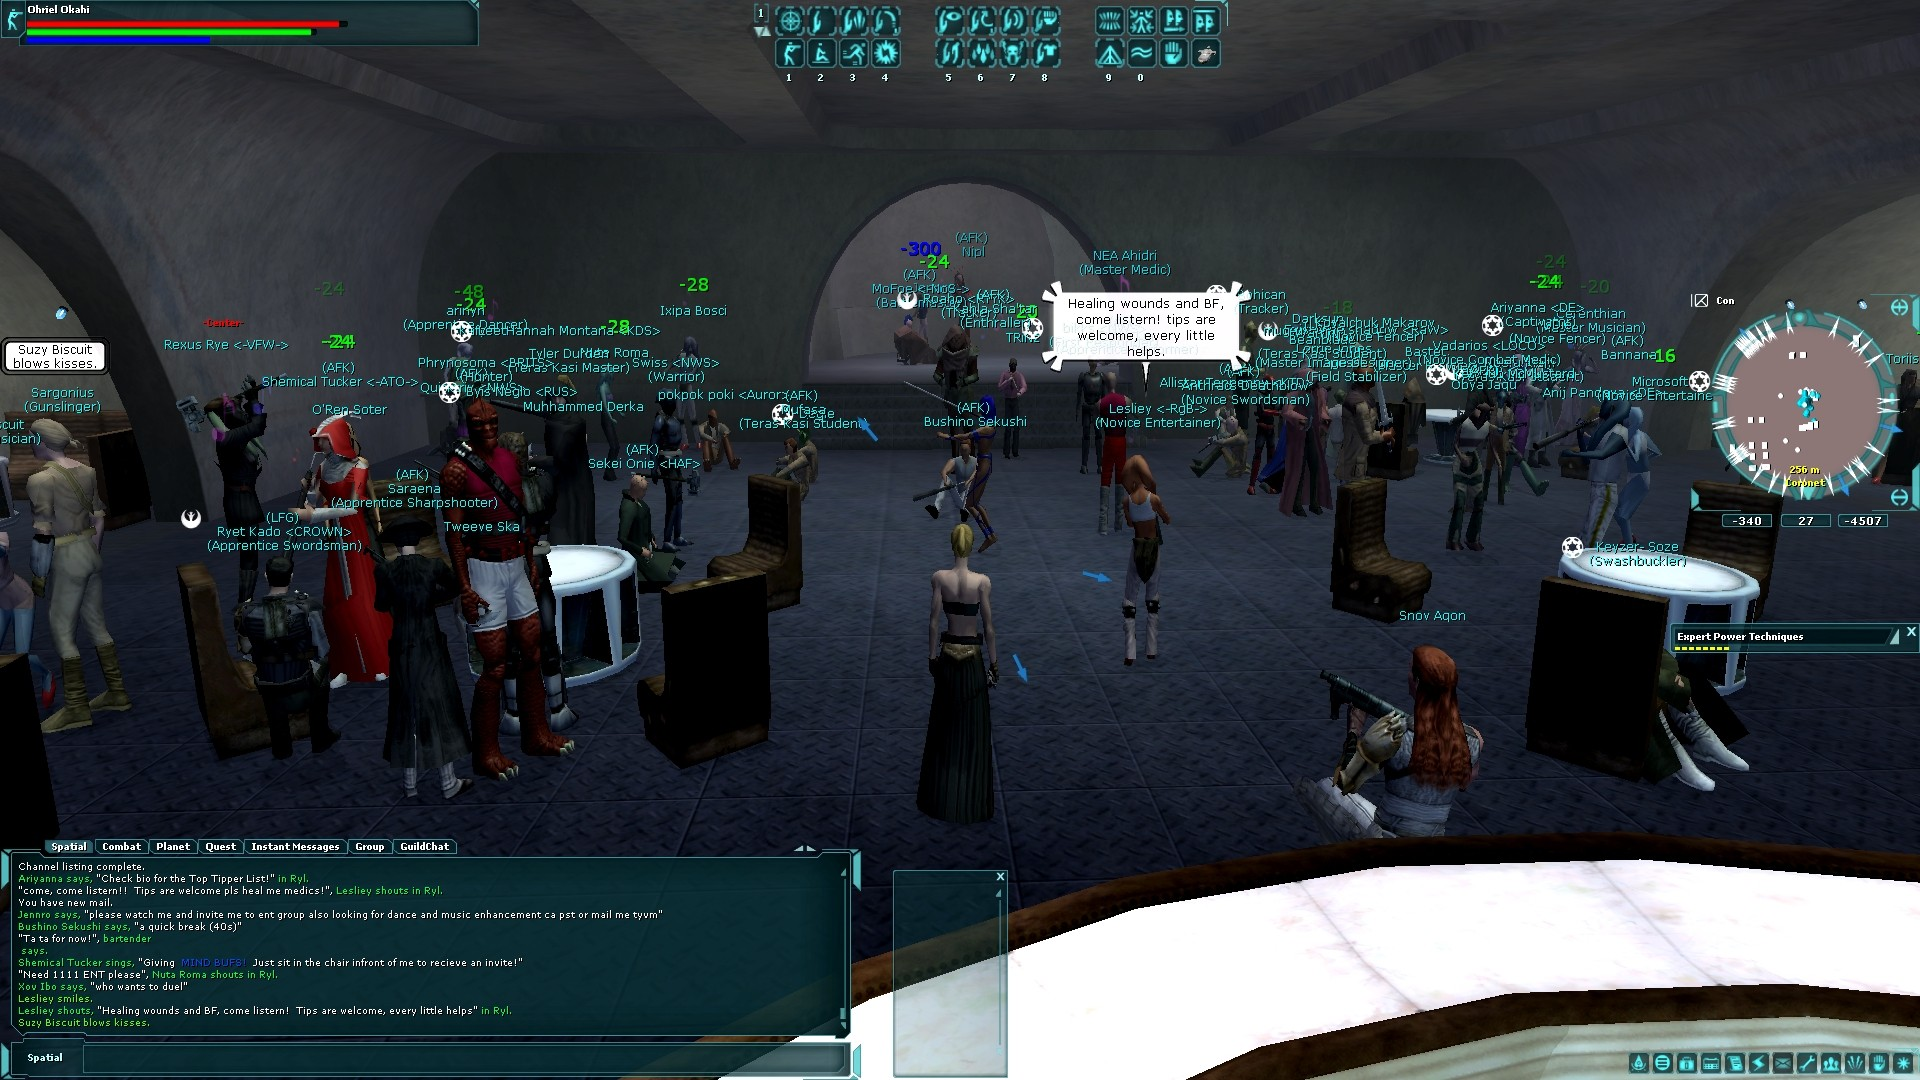 Star Wars Galaxies - Cantina precu